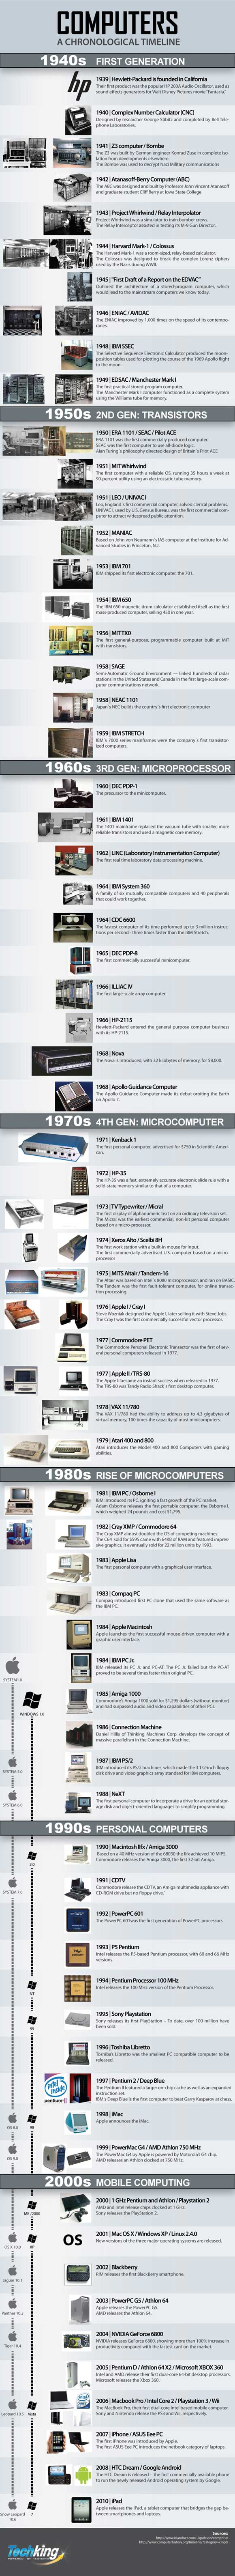 Computers-A-Chronological-Timeline-Infographic